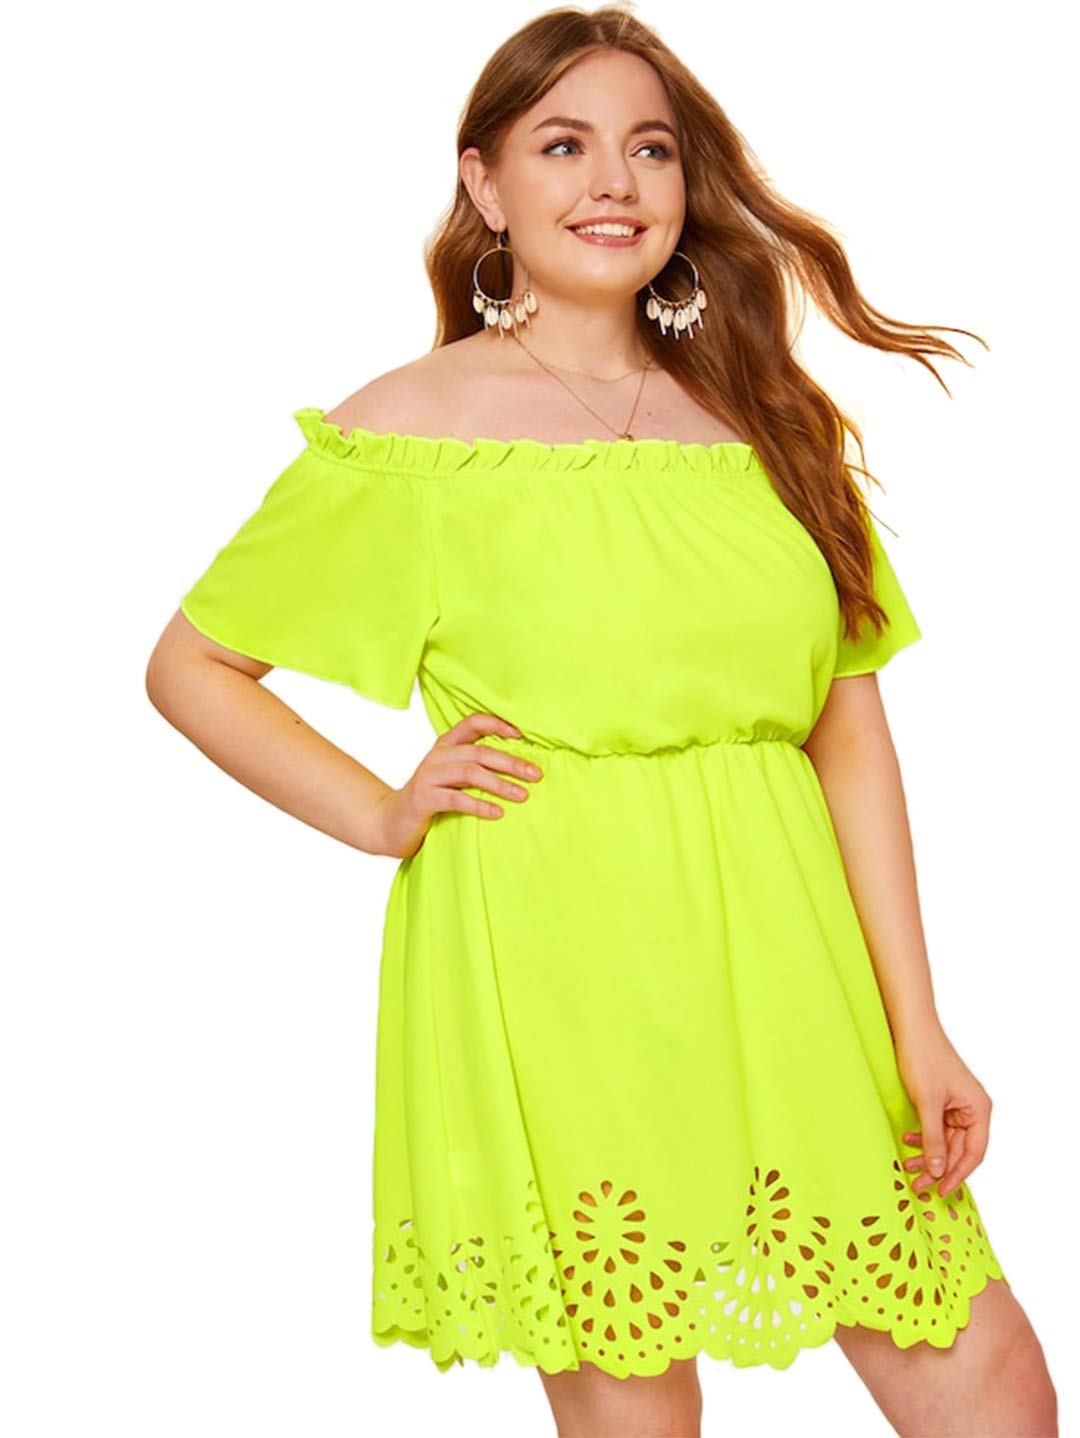 Plus Size Clothing - Women's Plus Size Off The Shoulder Hollowed Out Scallop Hem Party Short Dresses